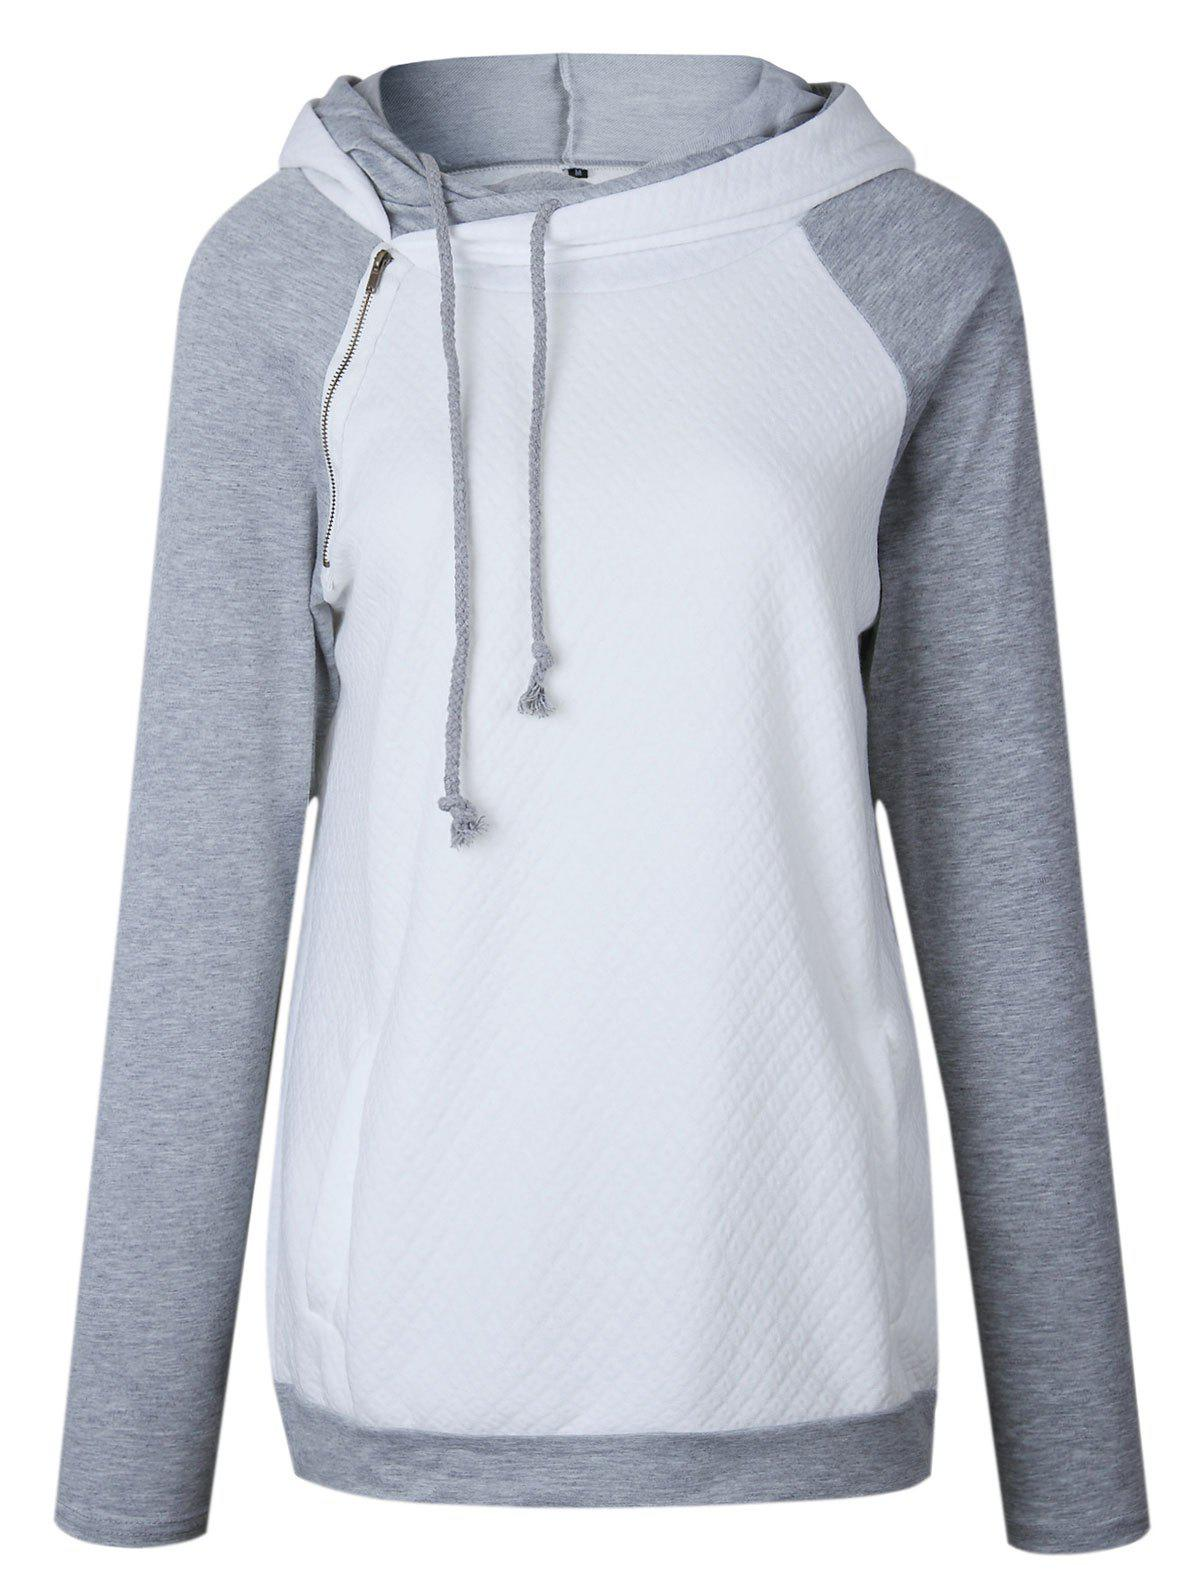 Raglan Sleeve Zippered Embellished Mock Neck Hoodie - WHITE XL